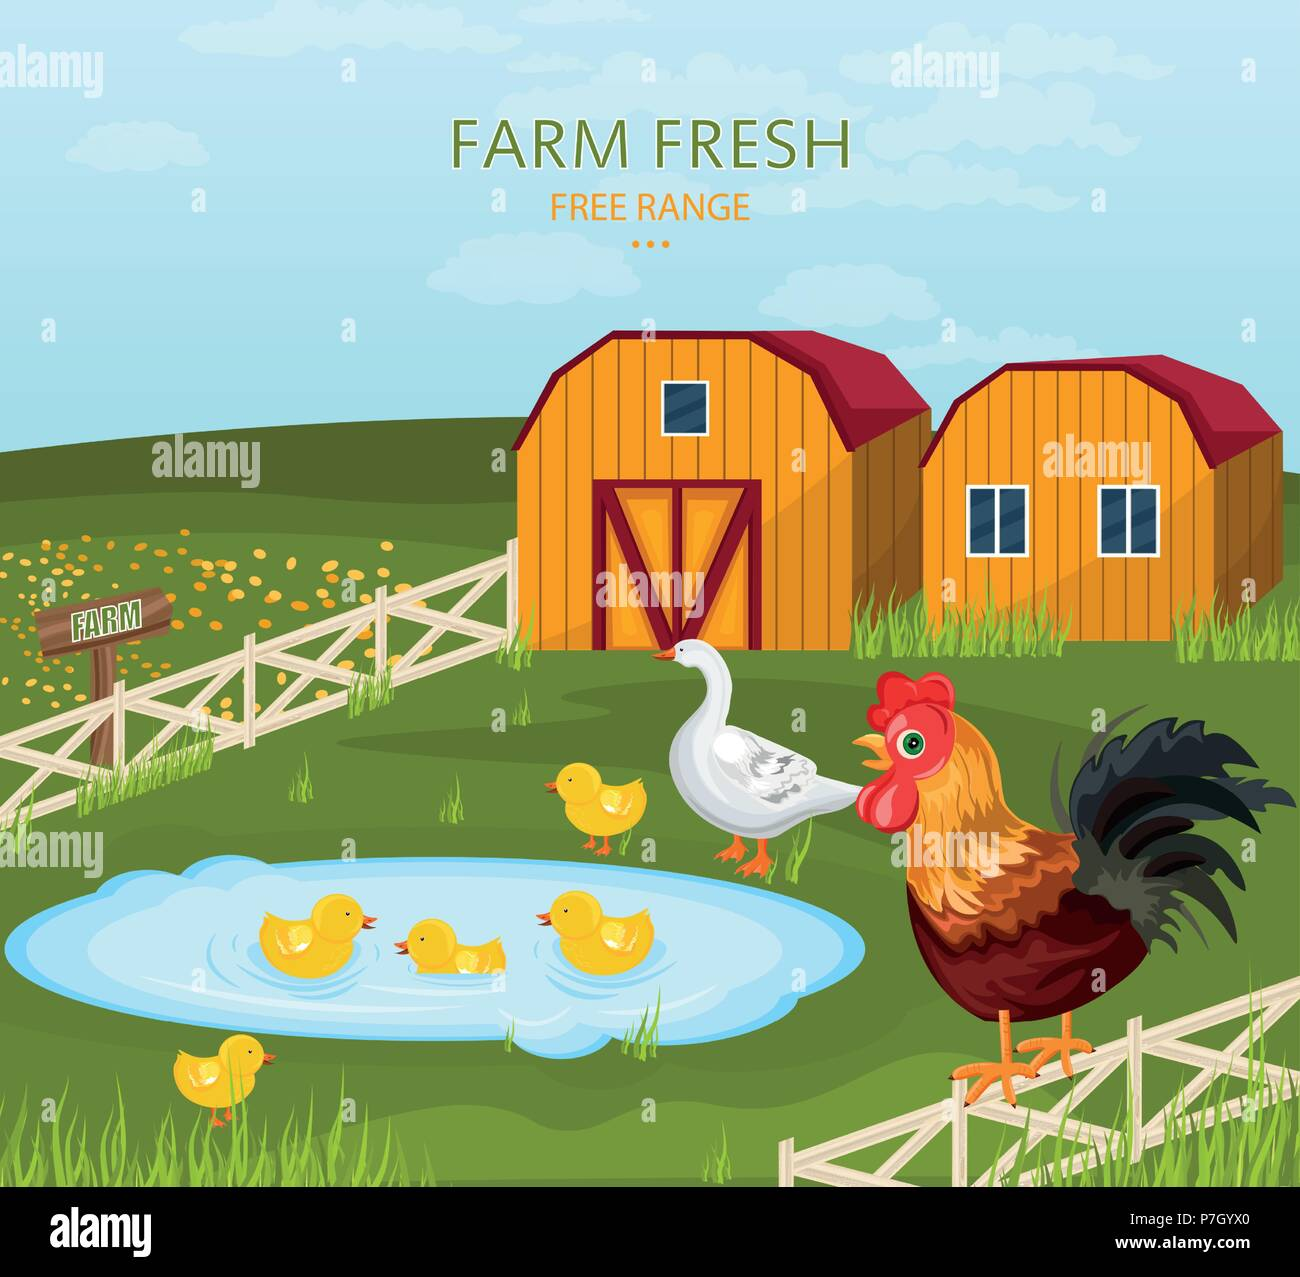 Free range chicken growing in the farm Vector illustration - Stock Vector